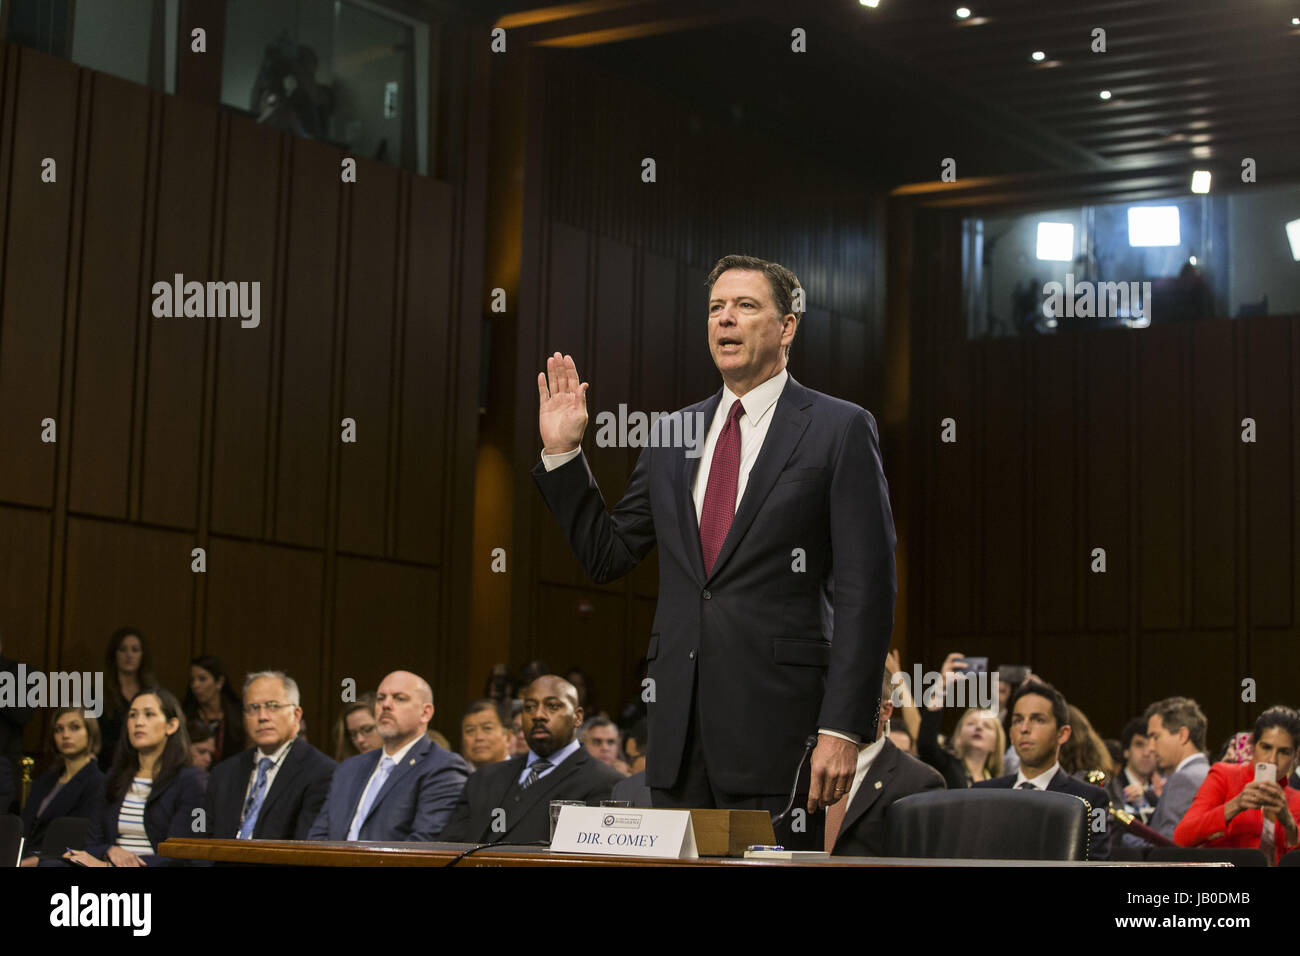 Washington, Distrito de Columbia, Estados Unidos. El 8 de junio, 2017. El ex director del FBI, James Comey juramento Imagen De Stock